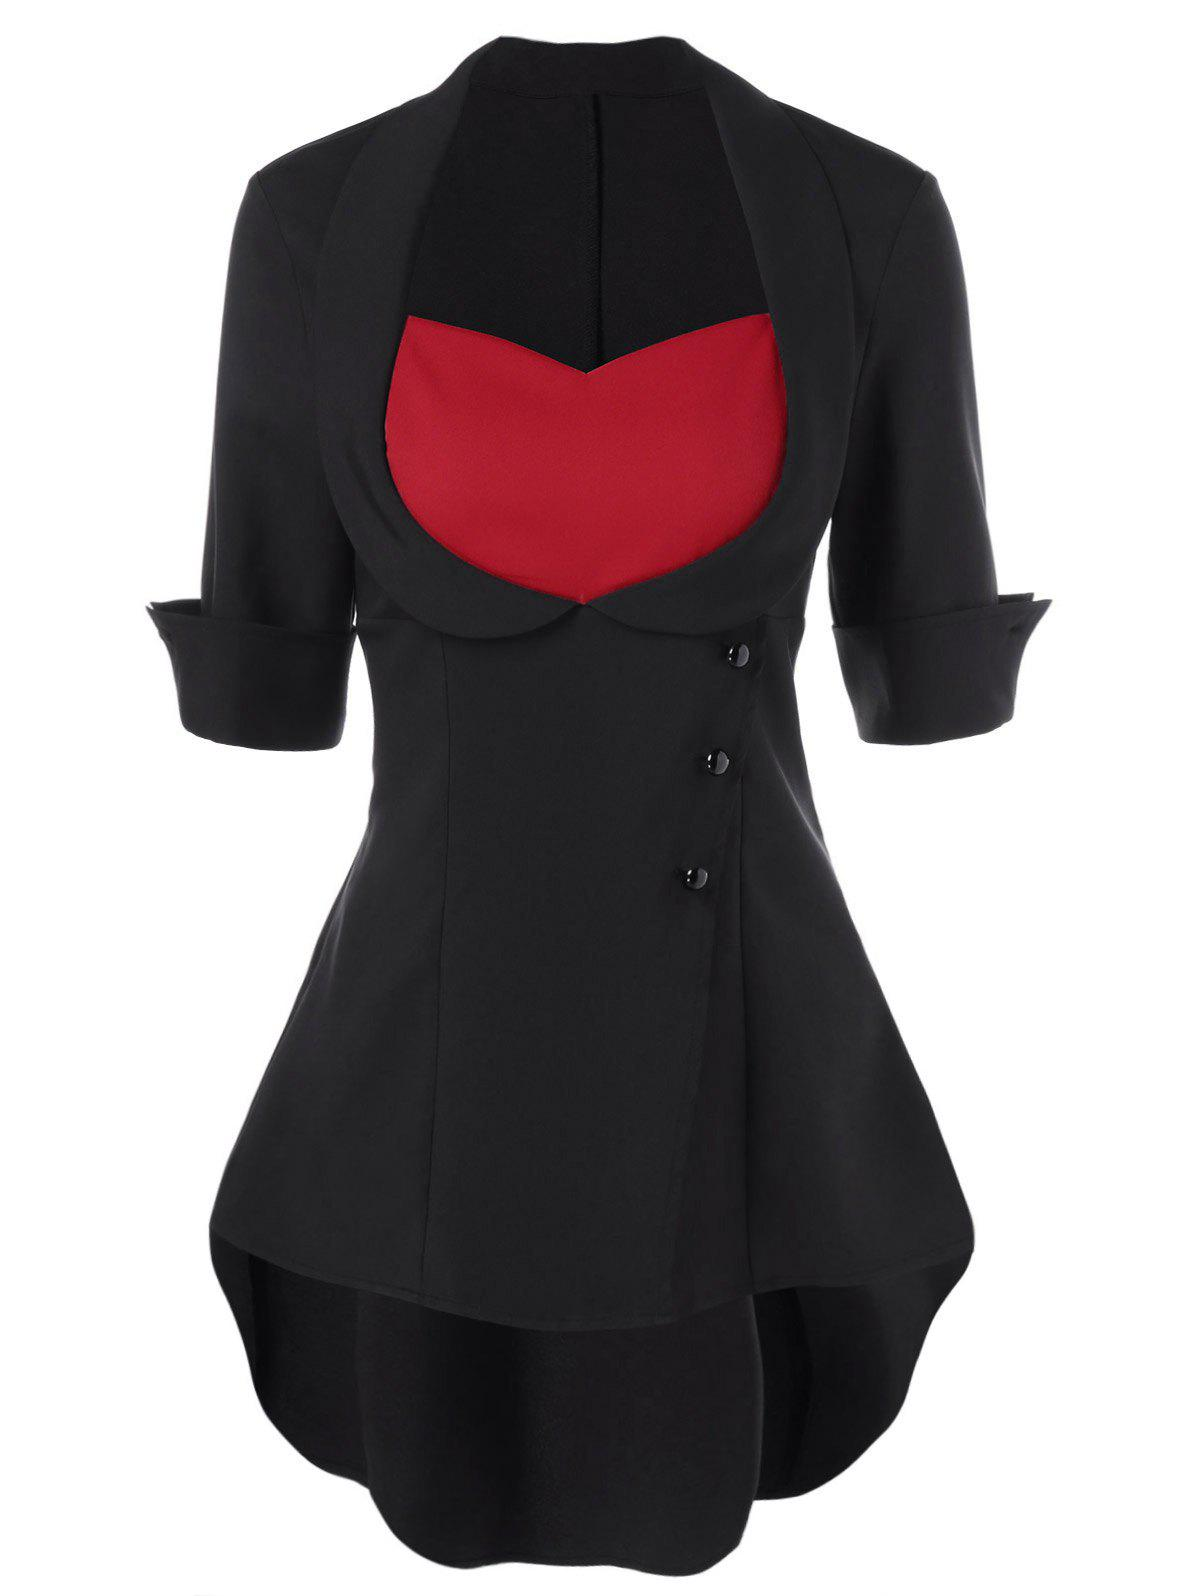 High Low Hem Lace Up BlouseWOMEN<br><br>Size: XL; Color: RED WITH BLACK; Style: Fashion; Material: Cotton,Polyester; Shirt Length: Long; Sleeve Length: Short; Collar: Sweetheart Neck; Pattern Type: Solid; Season: Spring,Summer; Weight: 0.3600kg; Package Contents: 1 x Blouse;